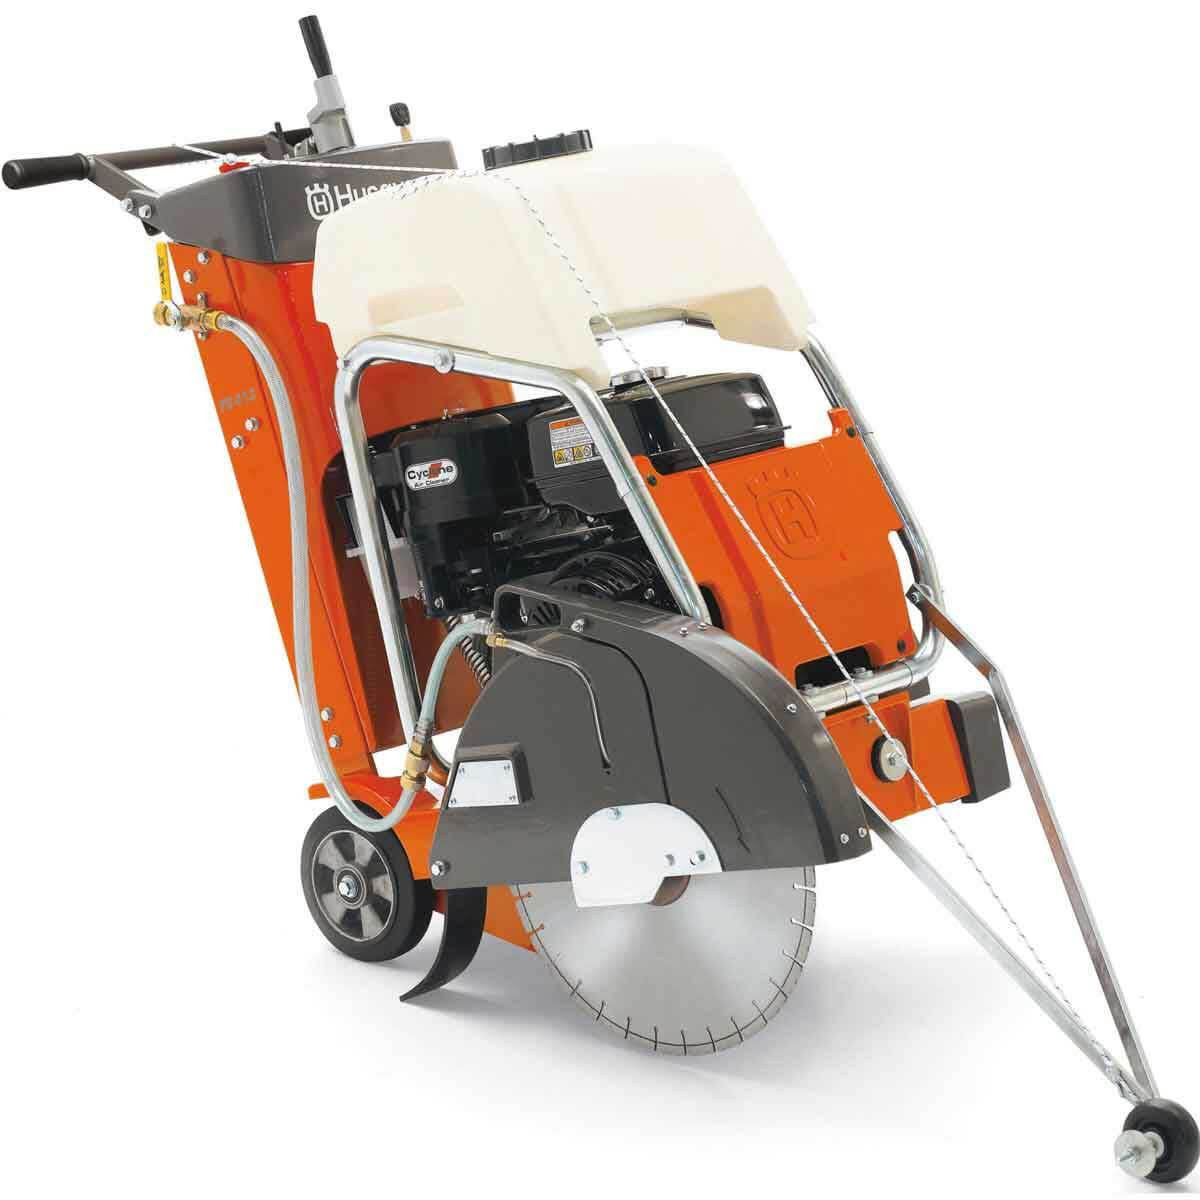 Husqvarna FS413 Push Concrete Saw